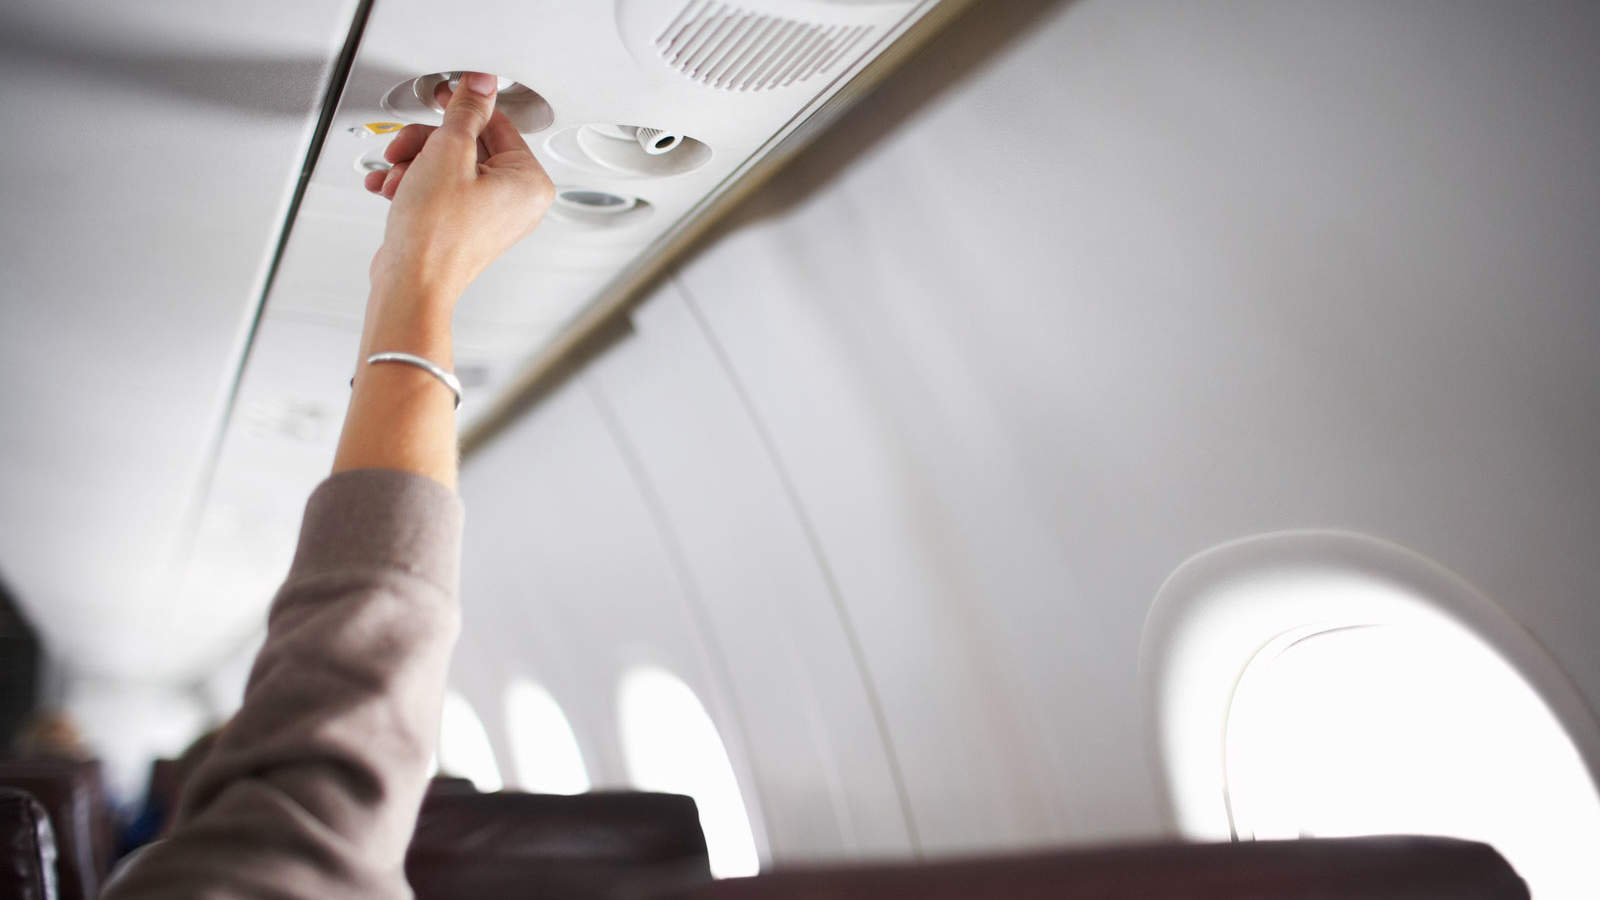 Why You Should Always Turn on the Air Vent Above You During a Flight